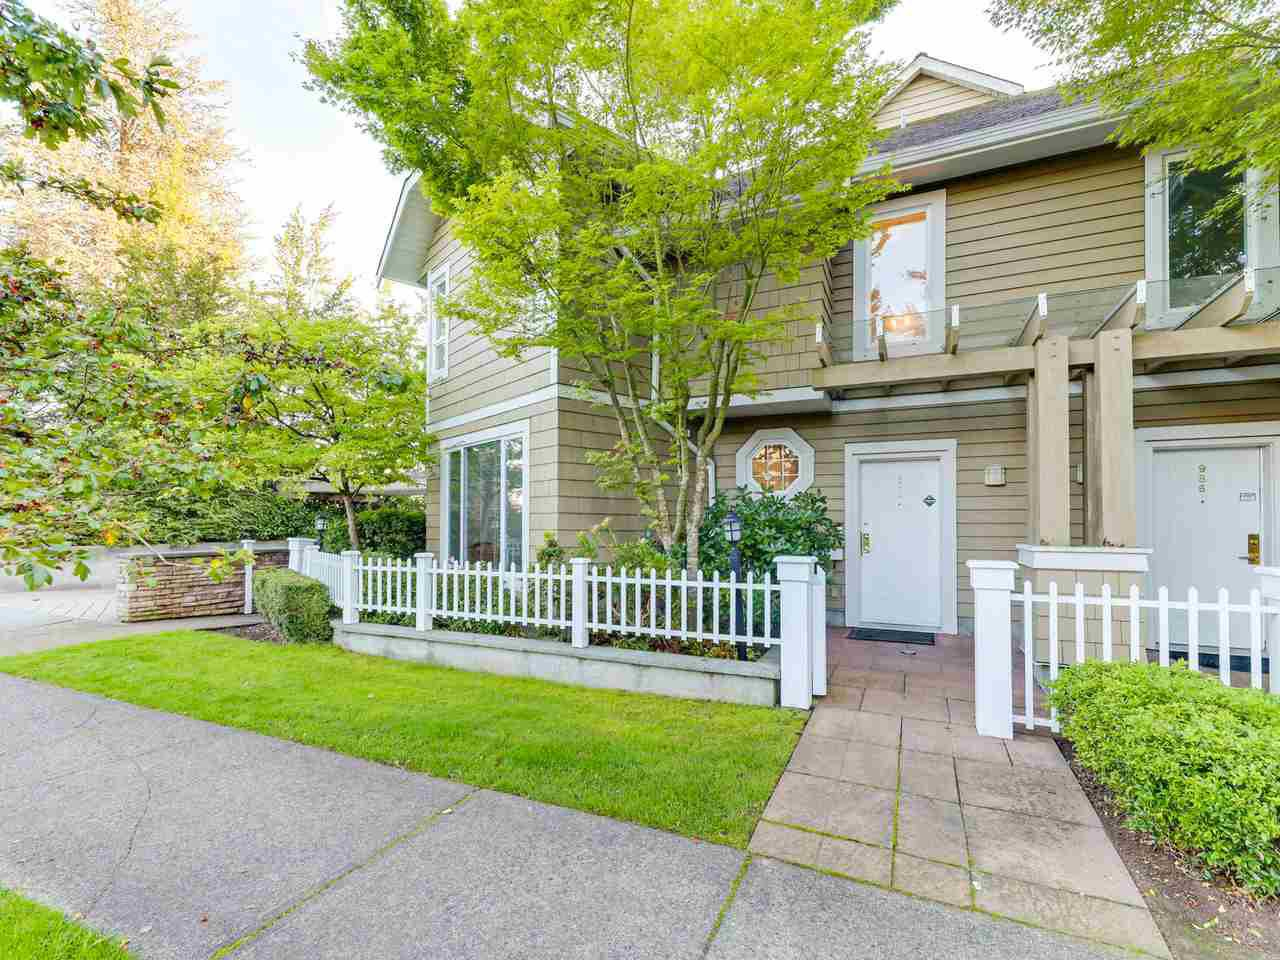 Main Photo: 972 West 54th Avenue in Vancouver: South Cambie Townhouse for sale (Vancouver West)  : MLS®# R2507523